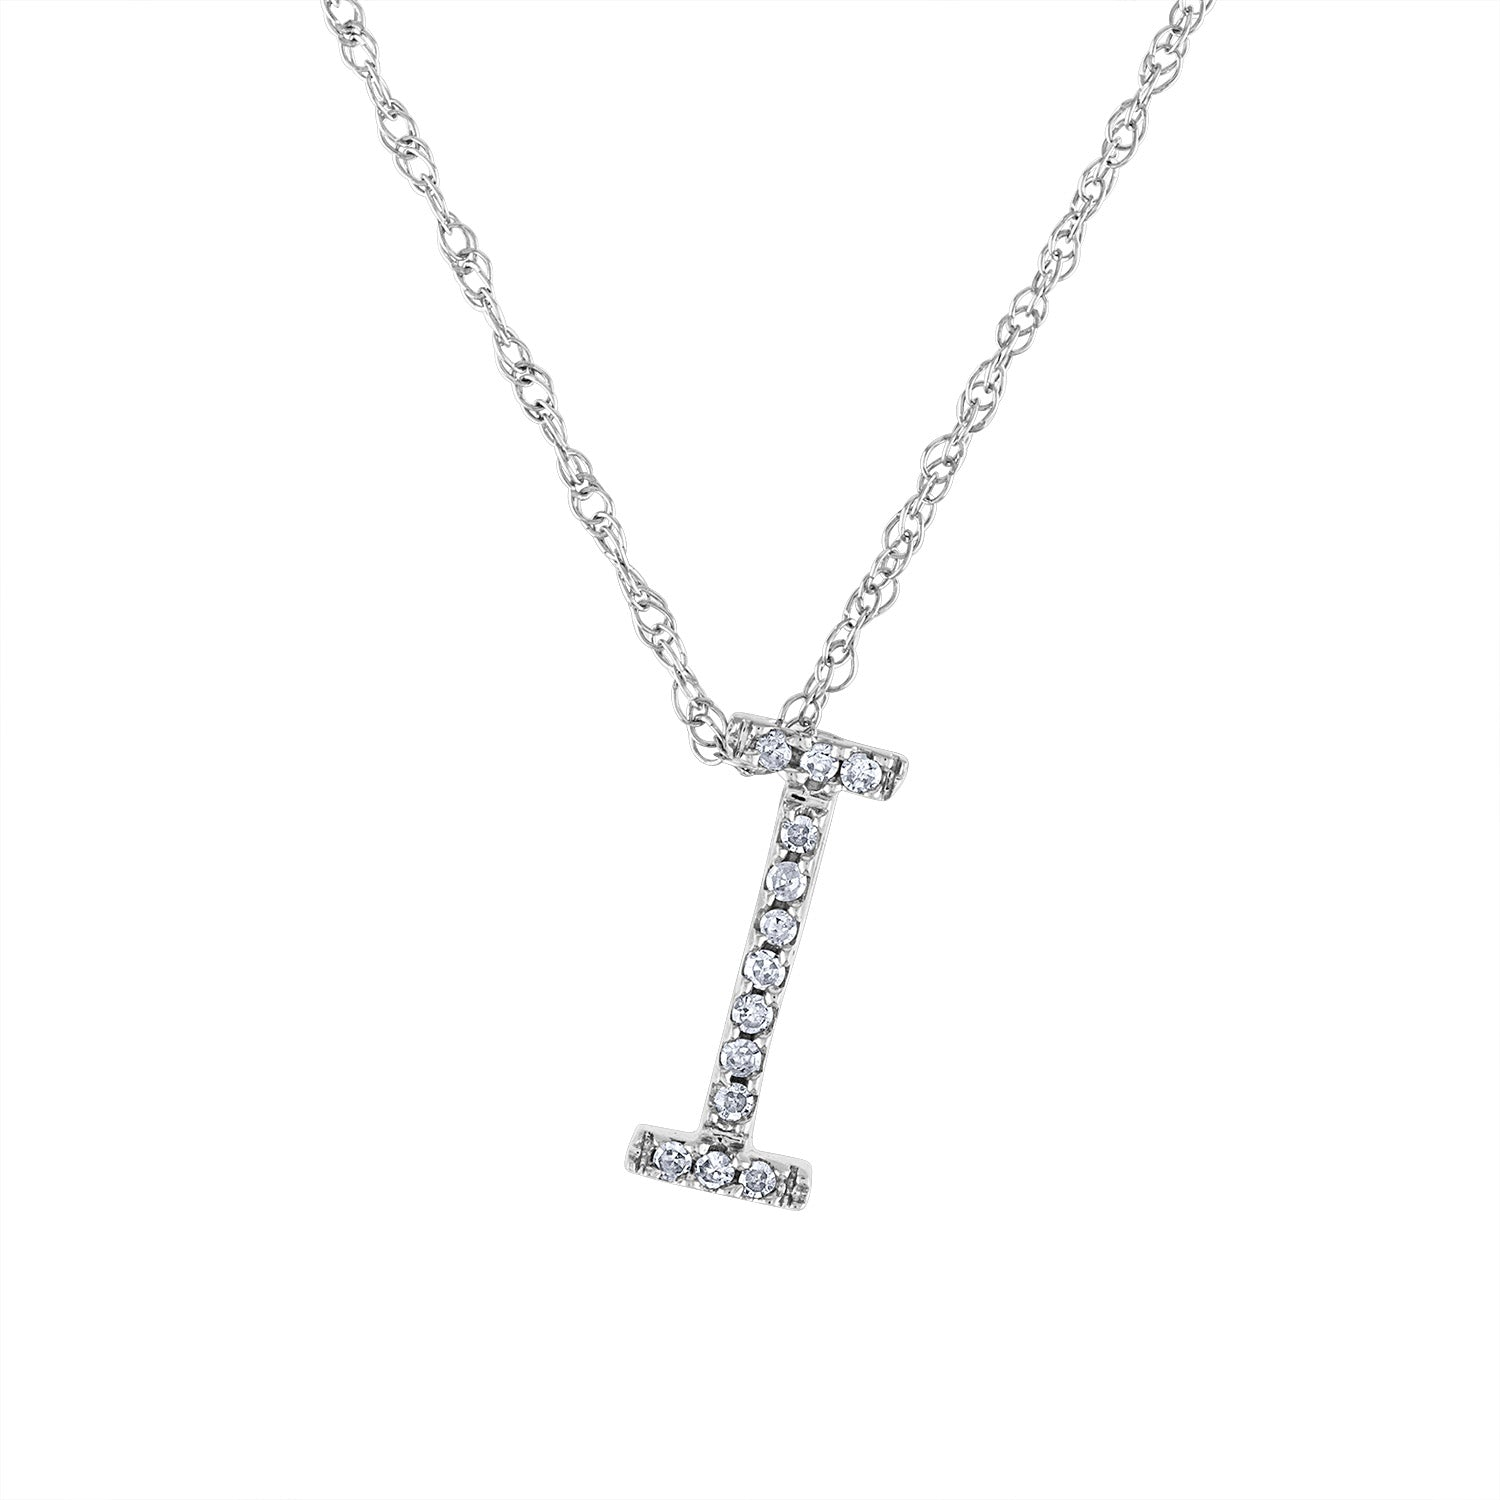 14k White Gold diamond initial I necklace